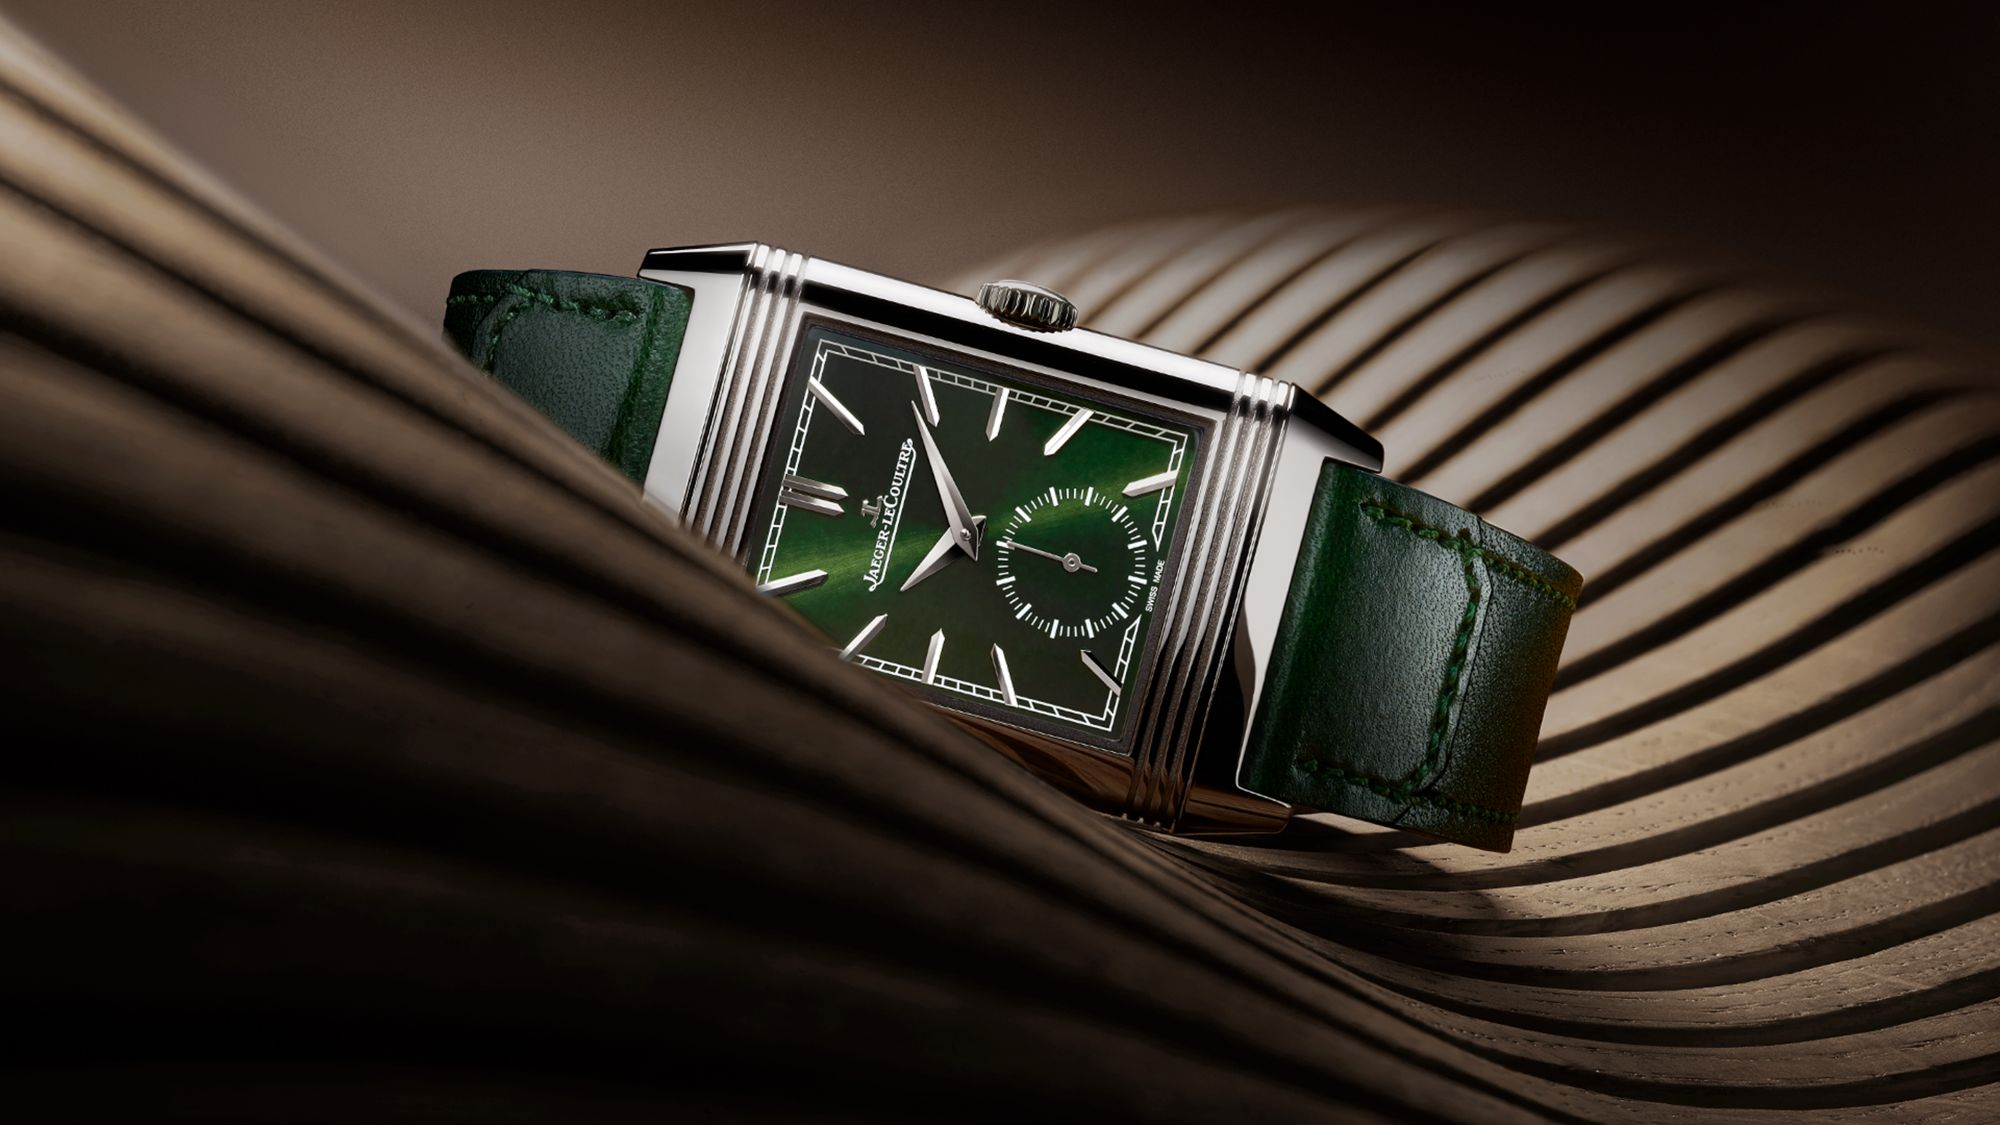 Watches & Wonders 2021: Green Is The Trendiest Colour For Luxury Watches This Year